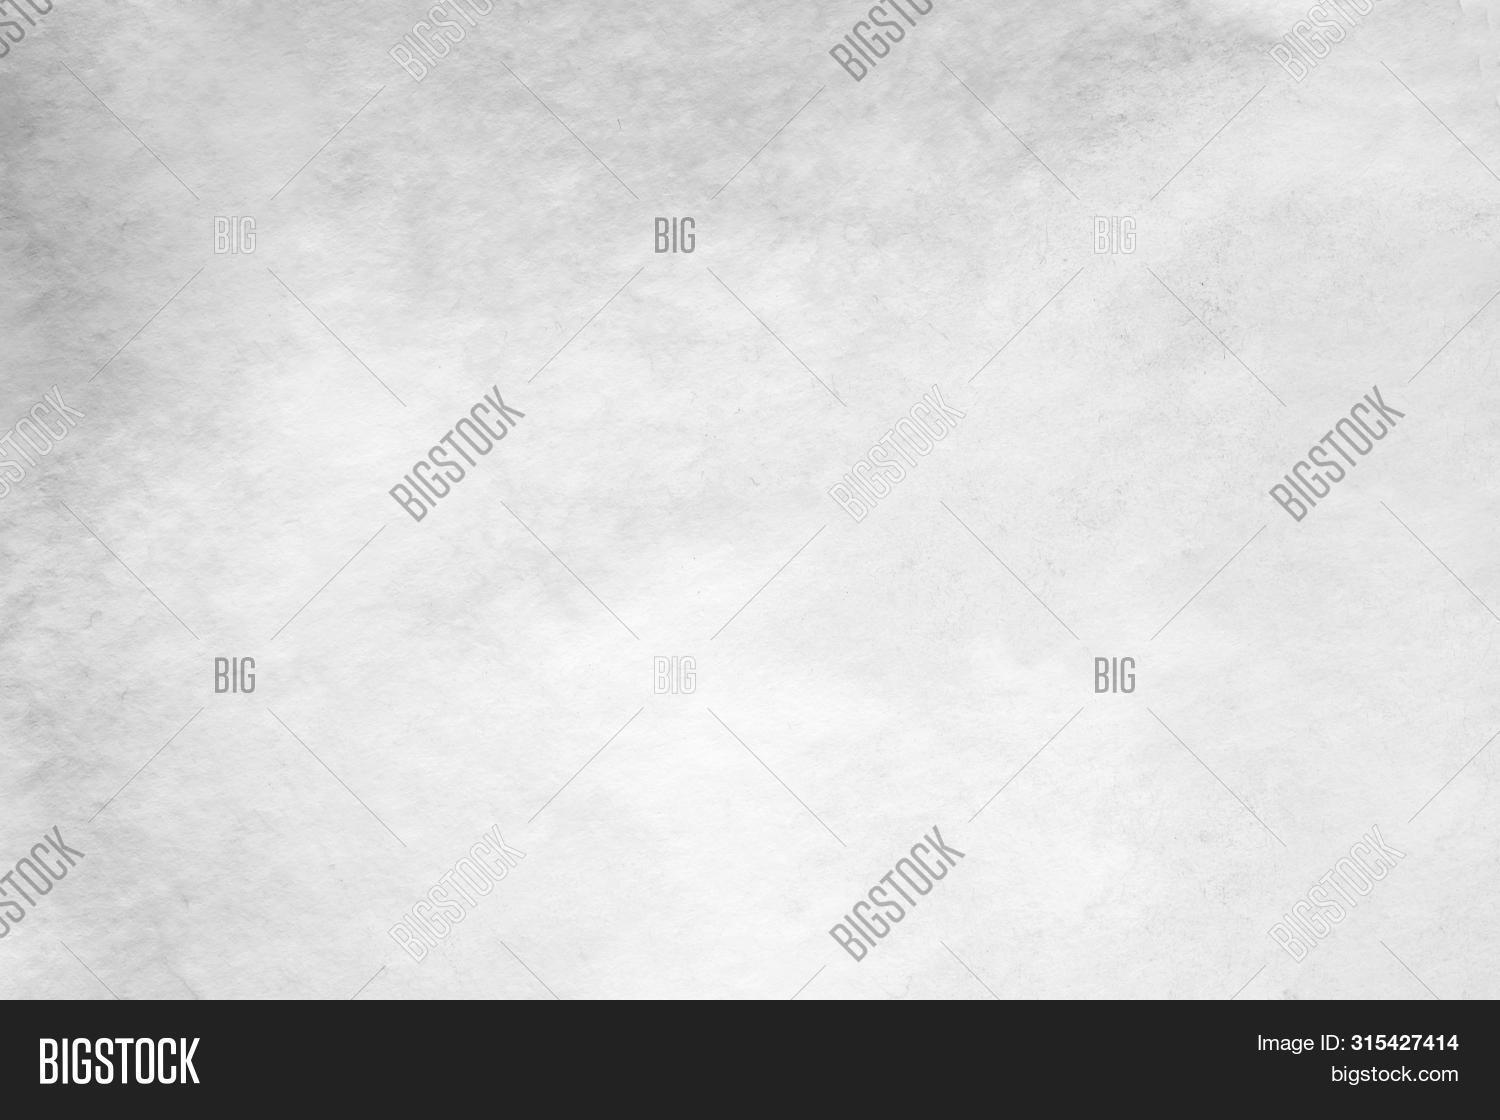 abstract,art,artistic,backdrop,background,banner,blank,blur,bright,brush,cloud,color,colour,creative,design,drawing,element,frame,gradient,graphic,gray,grey,hamdmade,illustration,ink,light,paint,paper,pattern,poster,soft,space,splash,splatter,stain,stroke,surface,template,texture,vintage,wallpaper,wash,water,watercolor,watercolour,wet,white